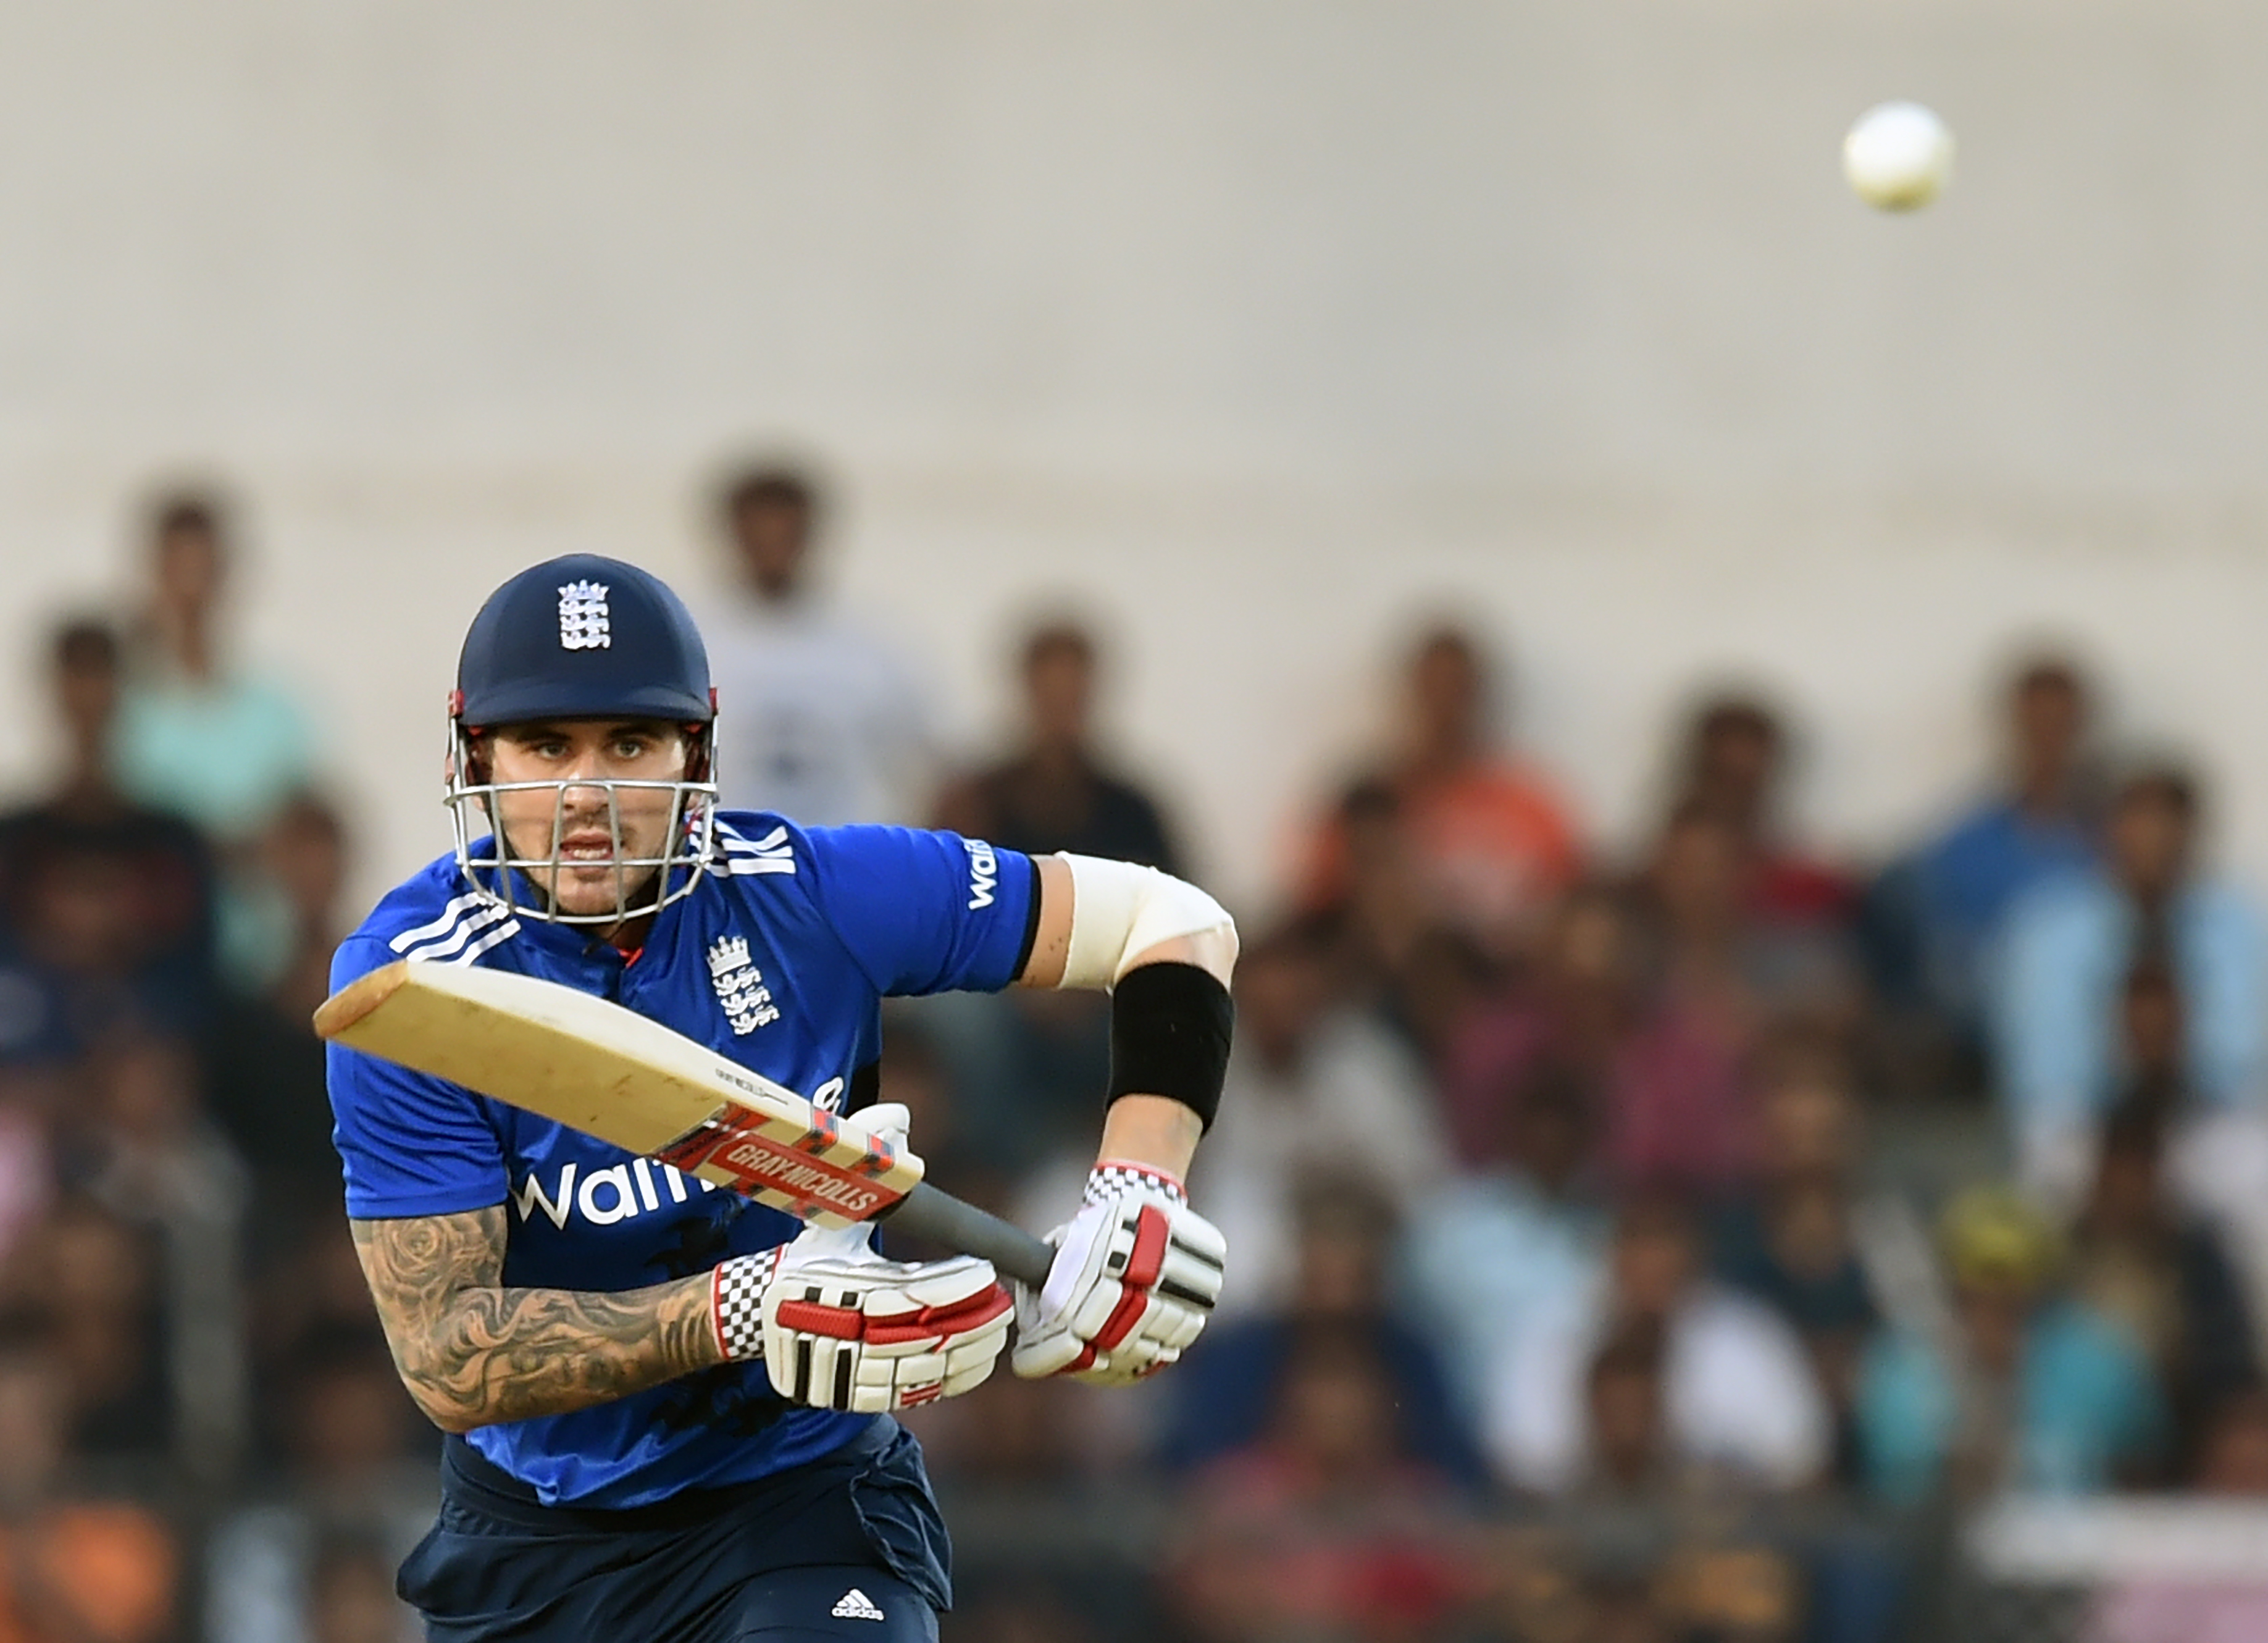 England's opener Alex Hales seems to be a good fit for IPL teams. AFP